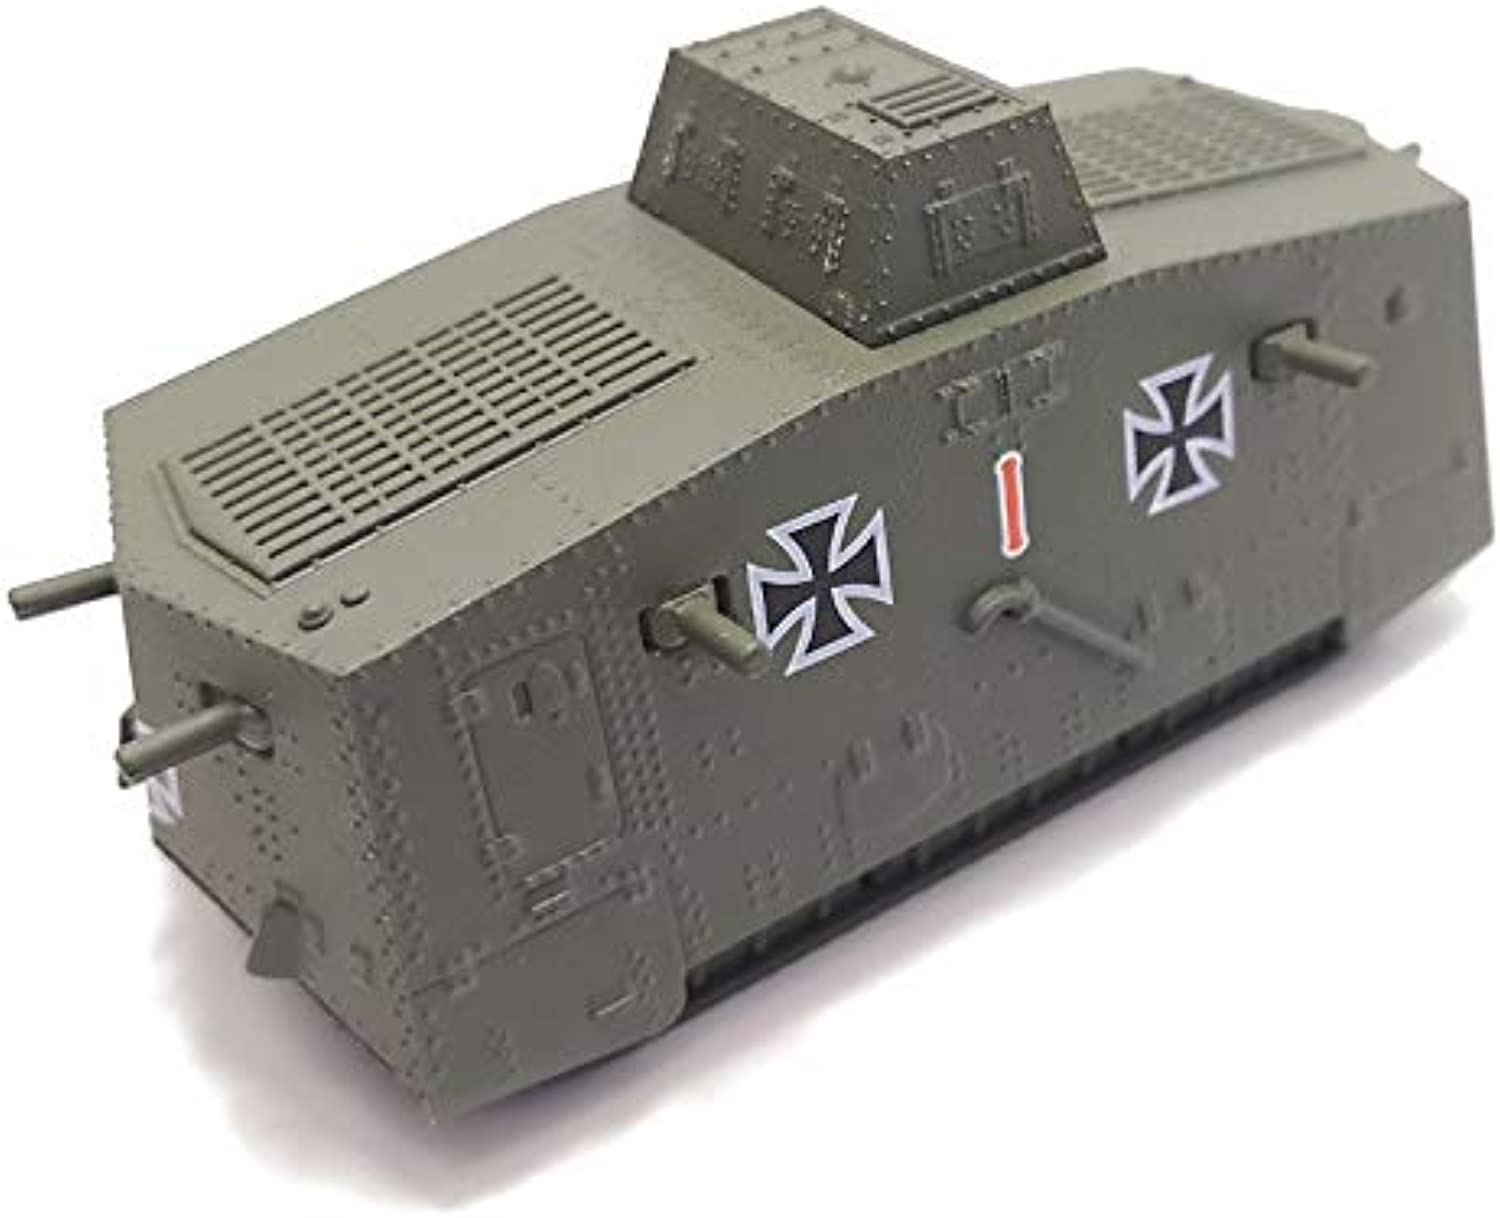 Generic Panzerkampf 1 100 Scale Military Model Toys World War I Sturmpanzerwagen A7V Tank Diecast Metal Model Toy for Collection,Gift A7V